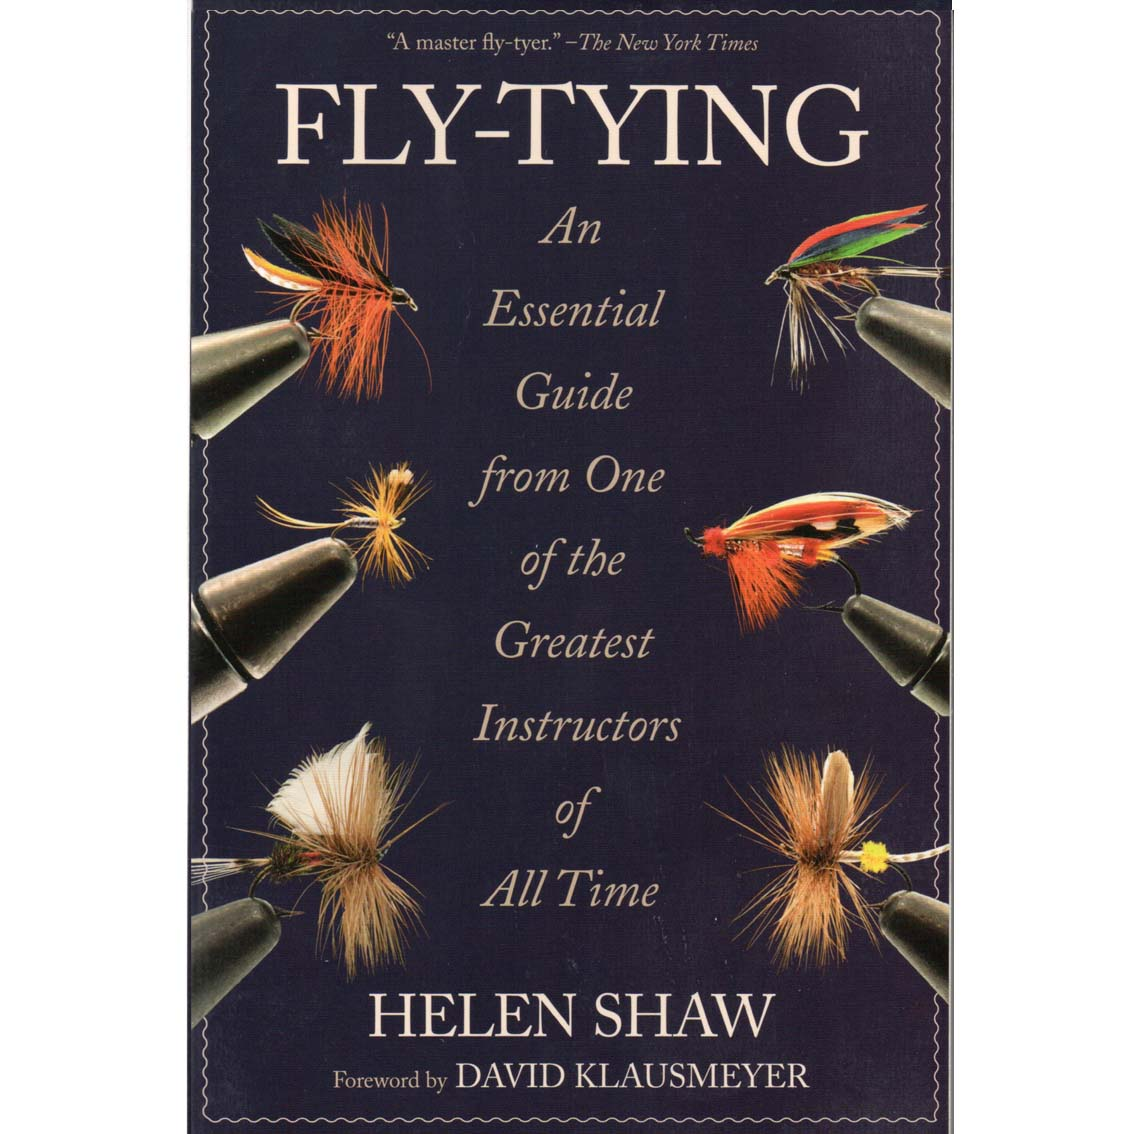 Livro Fly-Tying: An Essential Guide from One of the Greatest Instructors of All Time (Helen Shaw)